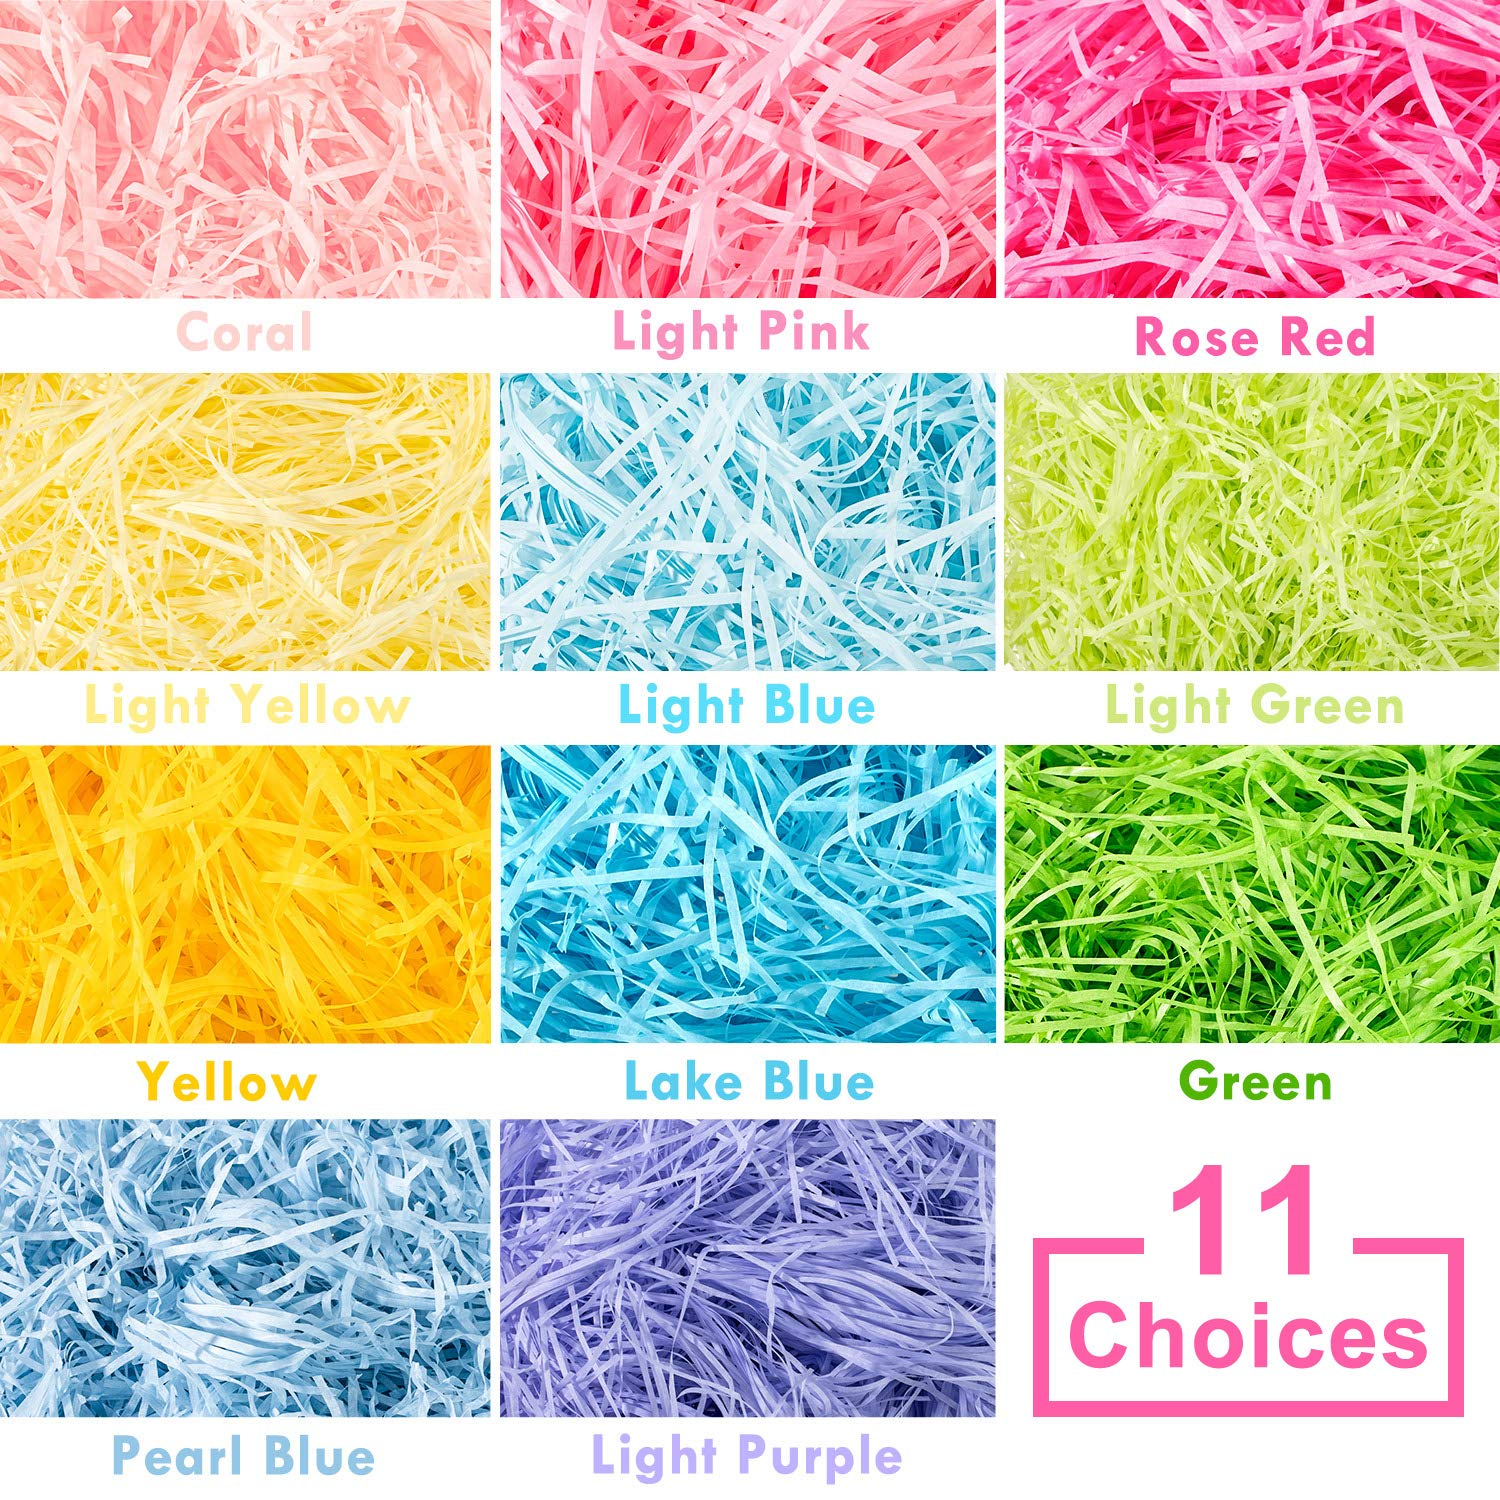 Whaline Easter Basket Grass Craft Shredded Tissue Raffia Gift Filler Paper Shreds for Baskets Egg Stuffers for Spring Party Supplies Accessories Decorations Yellow